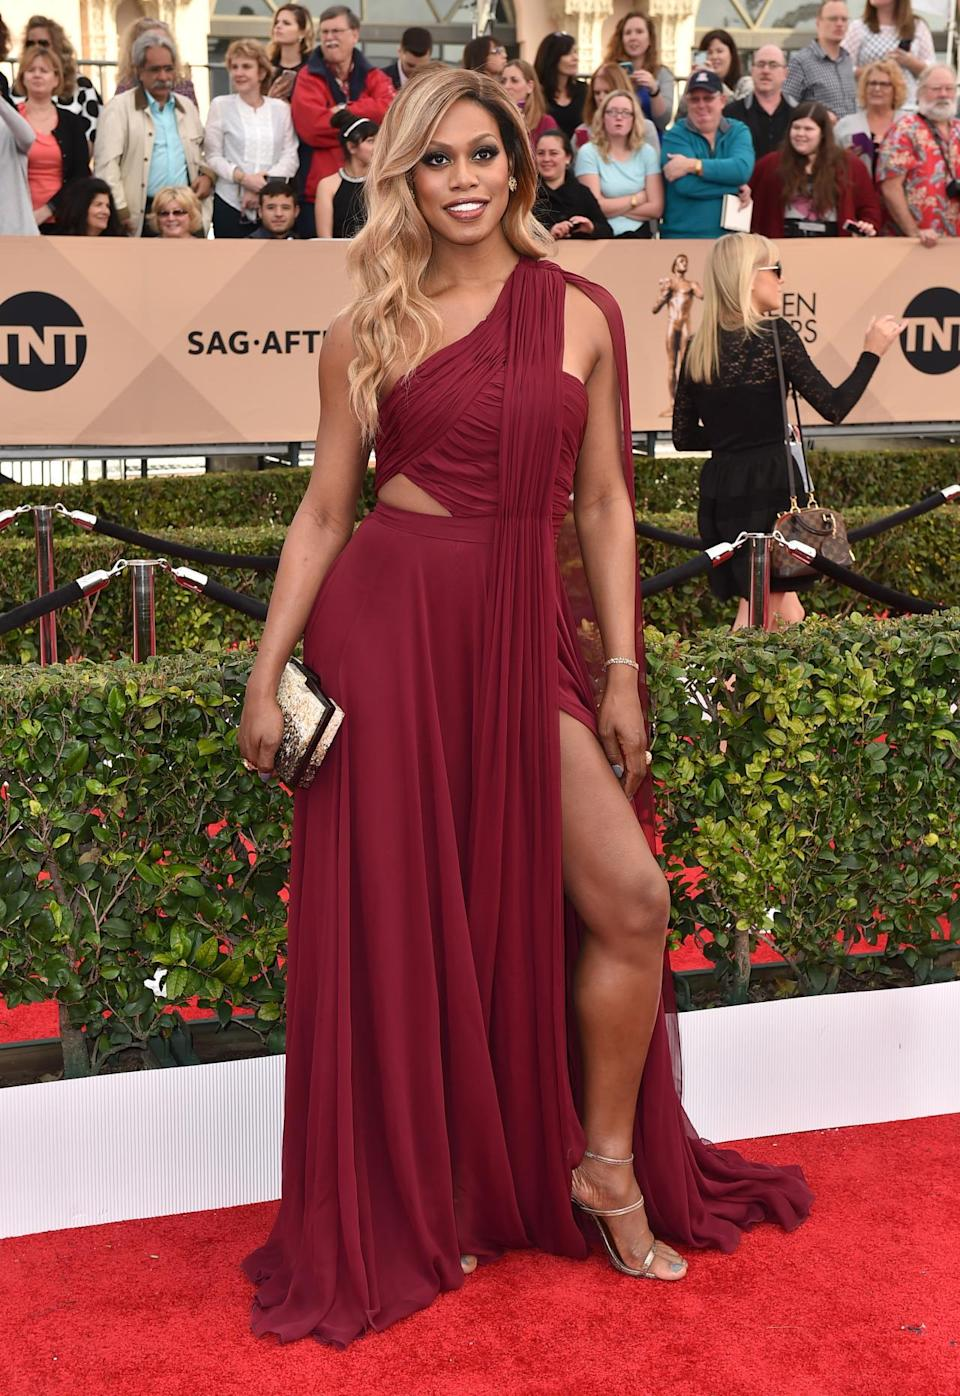 <p>Nominated with cast of the <i>Orange Is the New Black, </i>Laverne Cox attended the SAG Awards in a burgundy gown with cutouts and dramatic draping. Speaking of dramatic, she took the time to get political on the red carpet and gave a shoutout to the people of Flint, Michigan, also calling for the town's governor to resign. <i>Photo: AP</i></p>